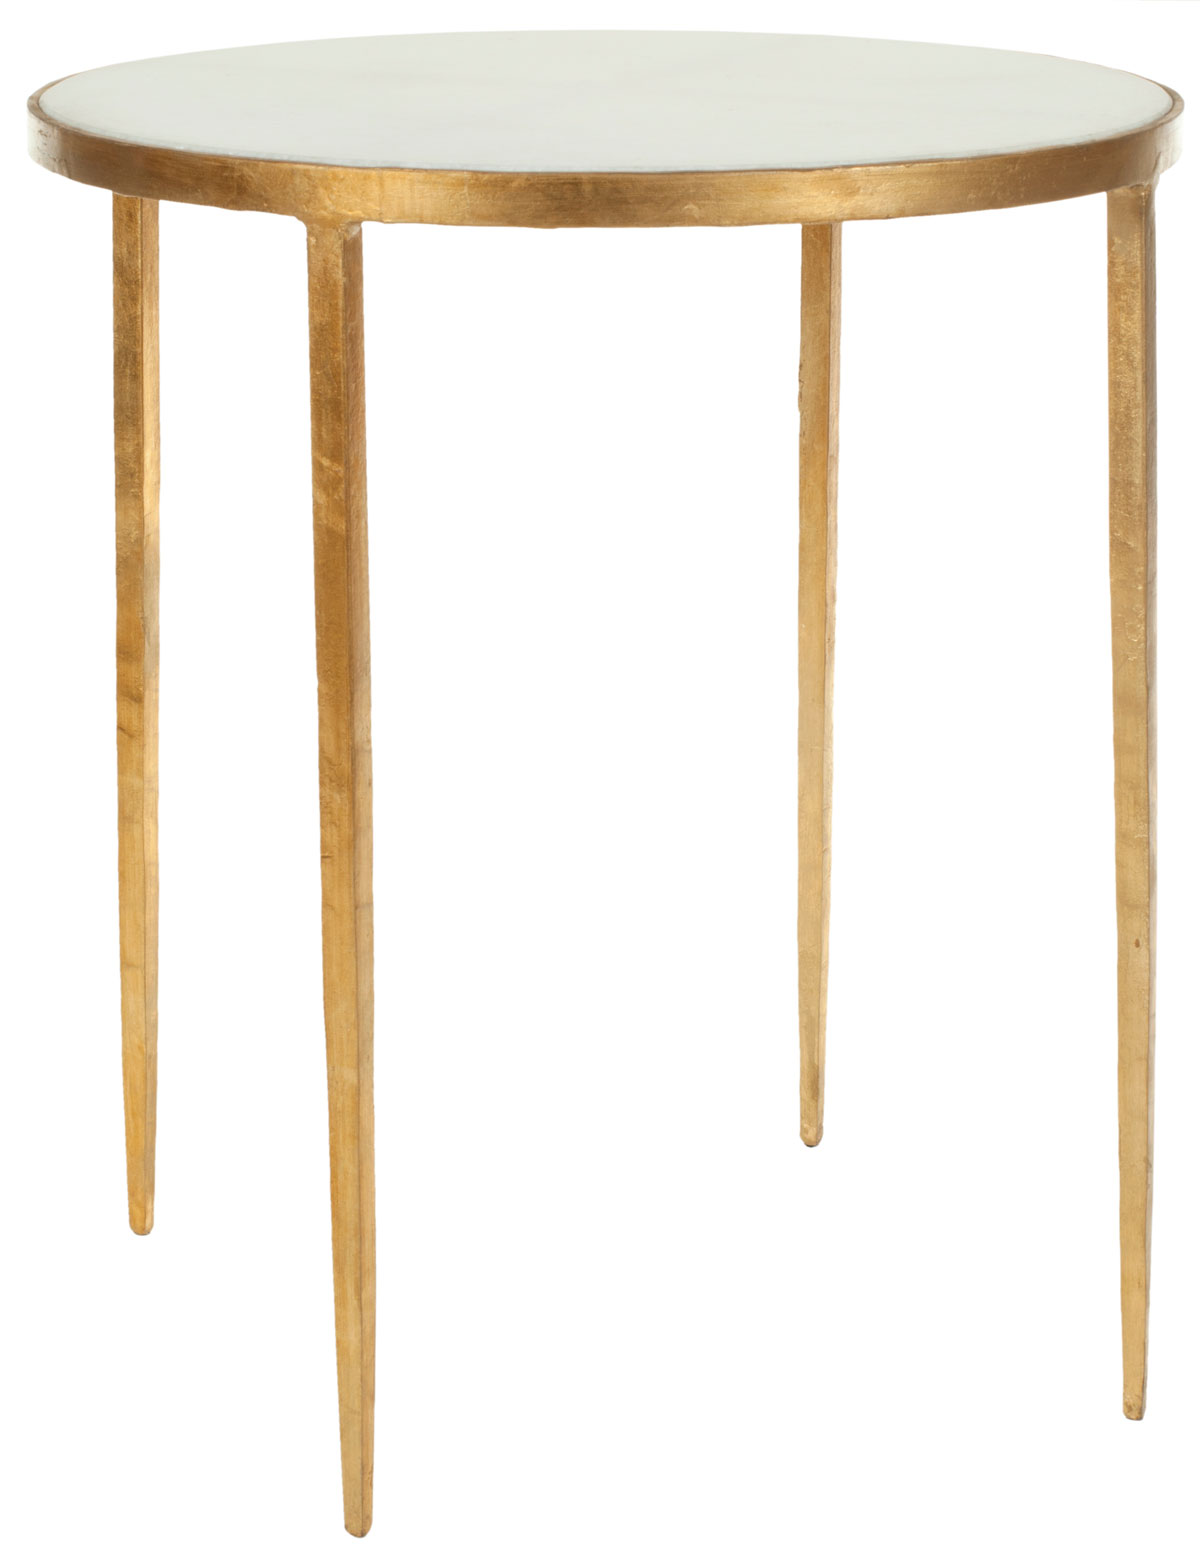 accent tables furniture safavieh front gold table with marble top share this product reclaimed wood bedside seater dining cover retro patio parasol antique oak end black glass